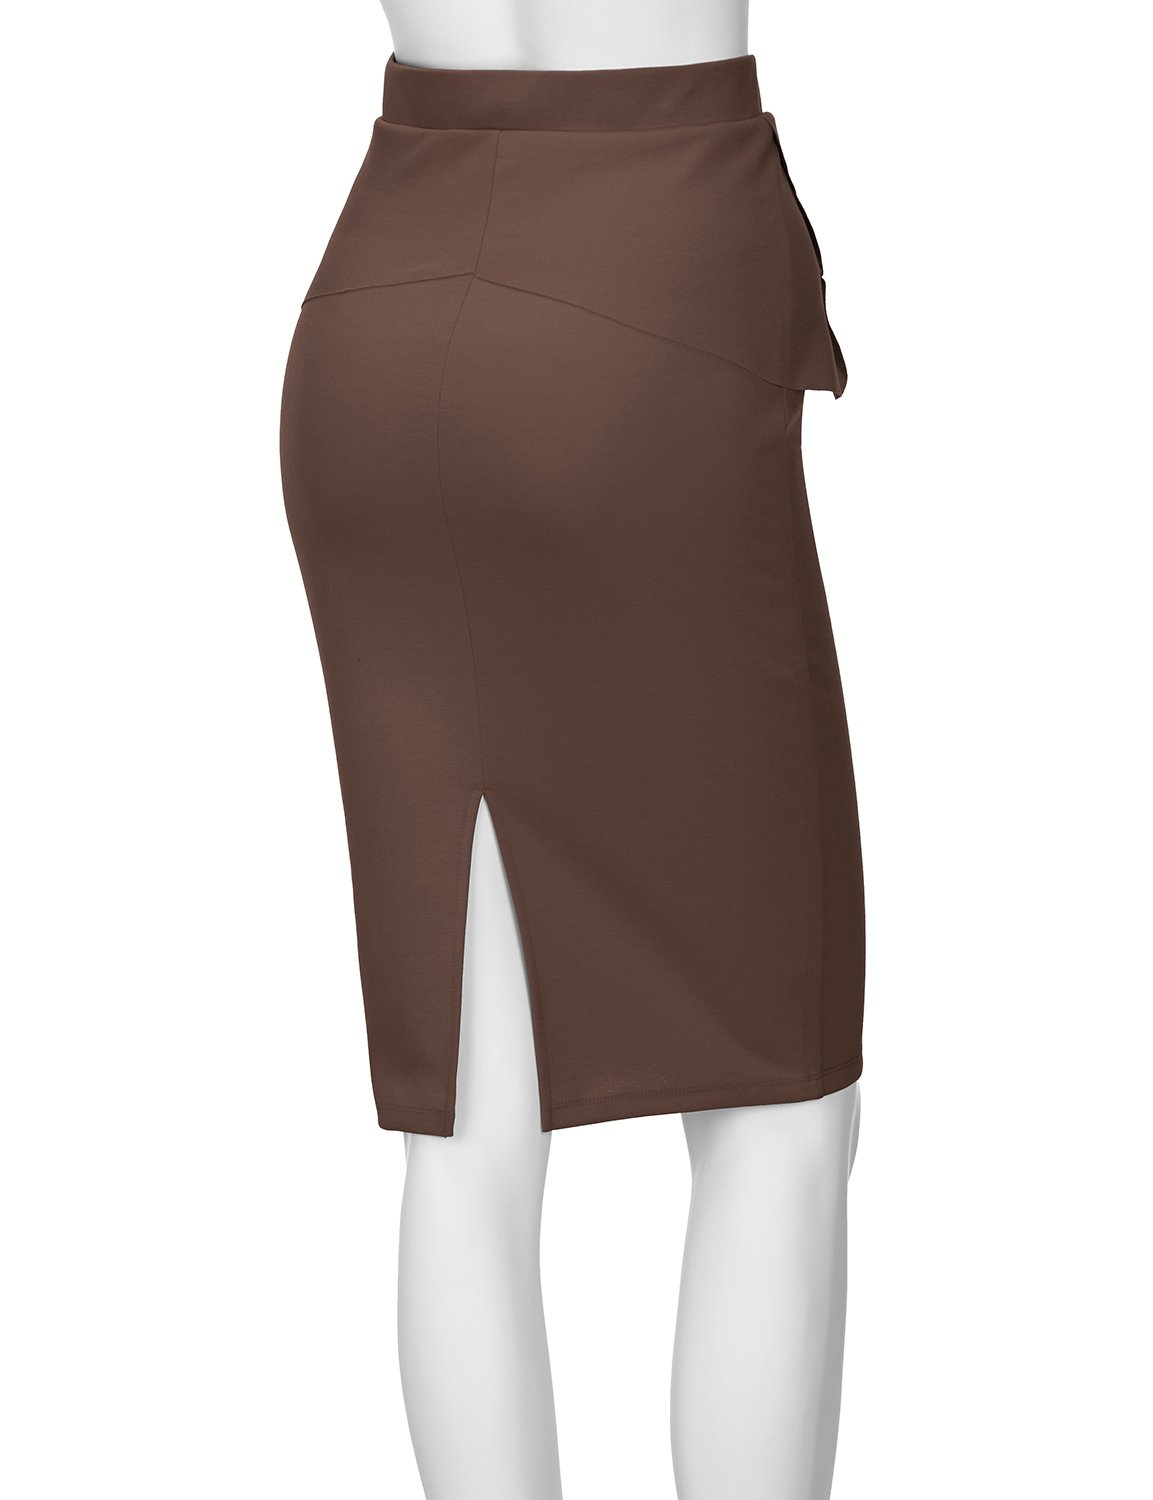 Regna X Womens high Waist Elastic Band Sexy Knee Length Skirts Brown XL by Regna X (Image #4)